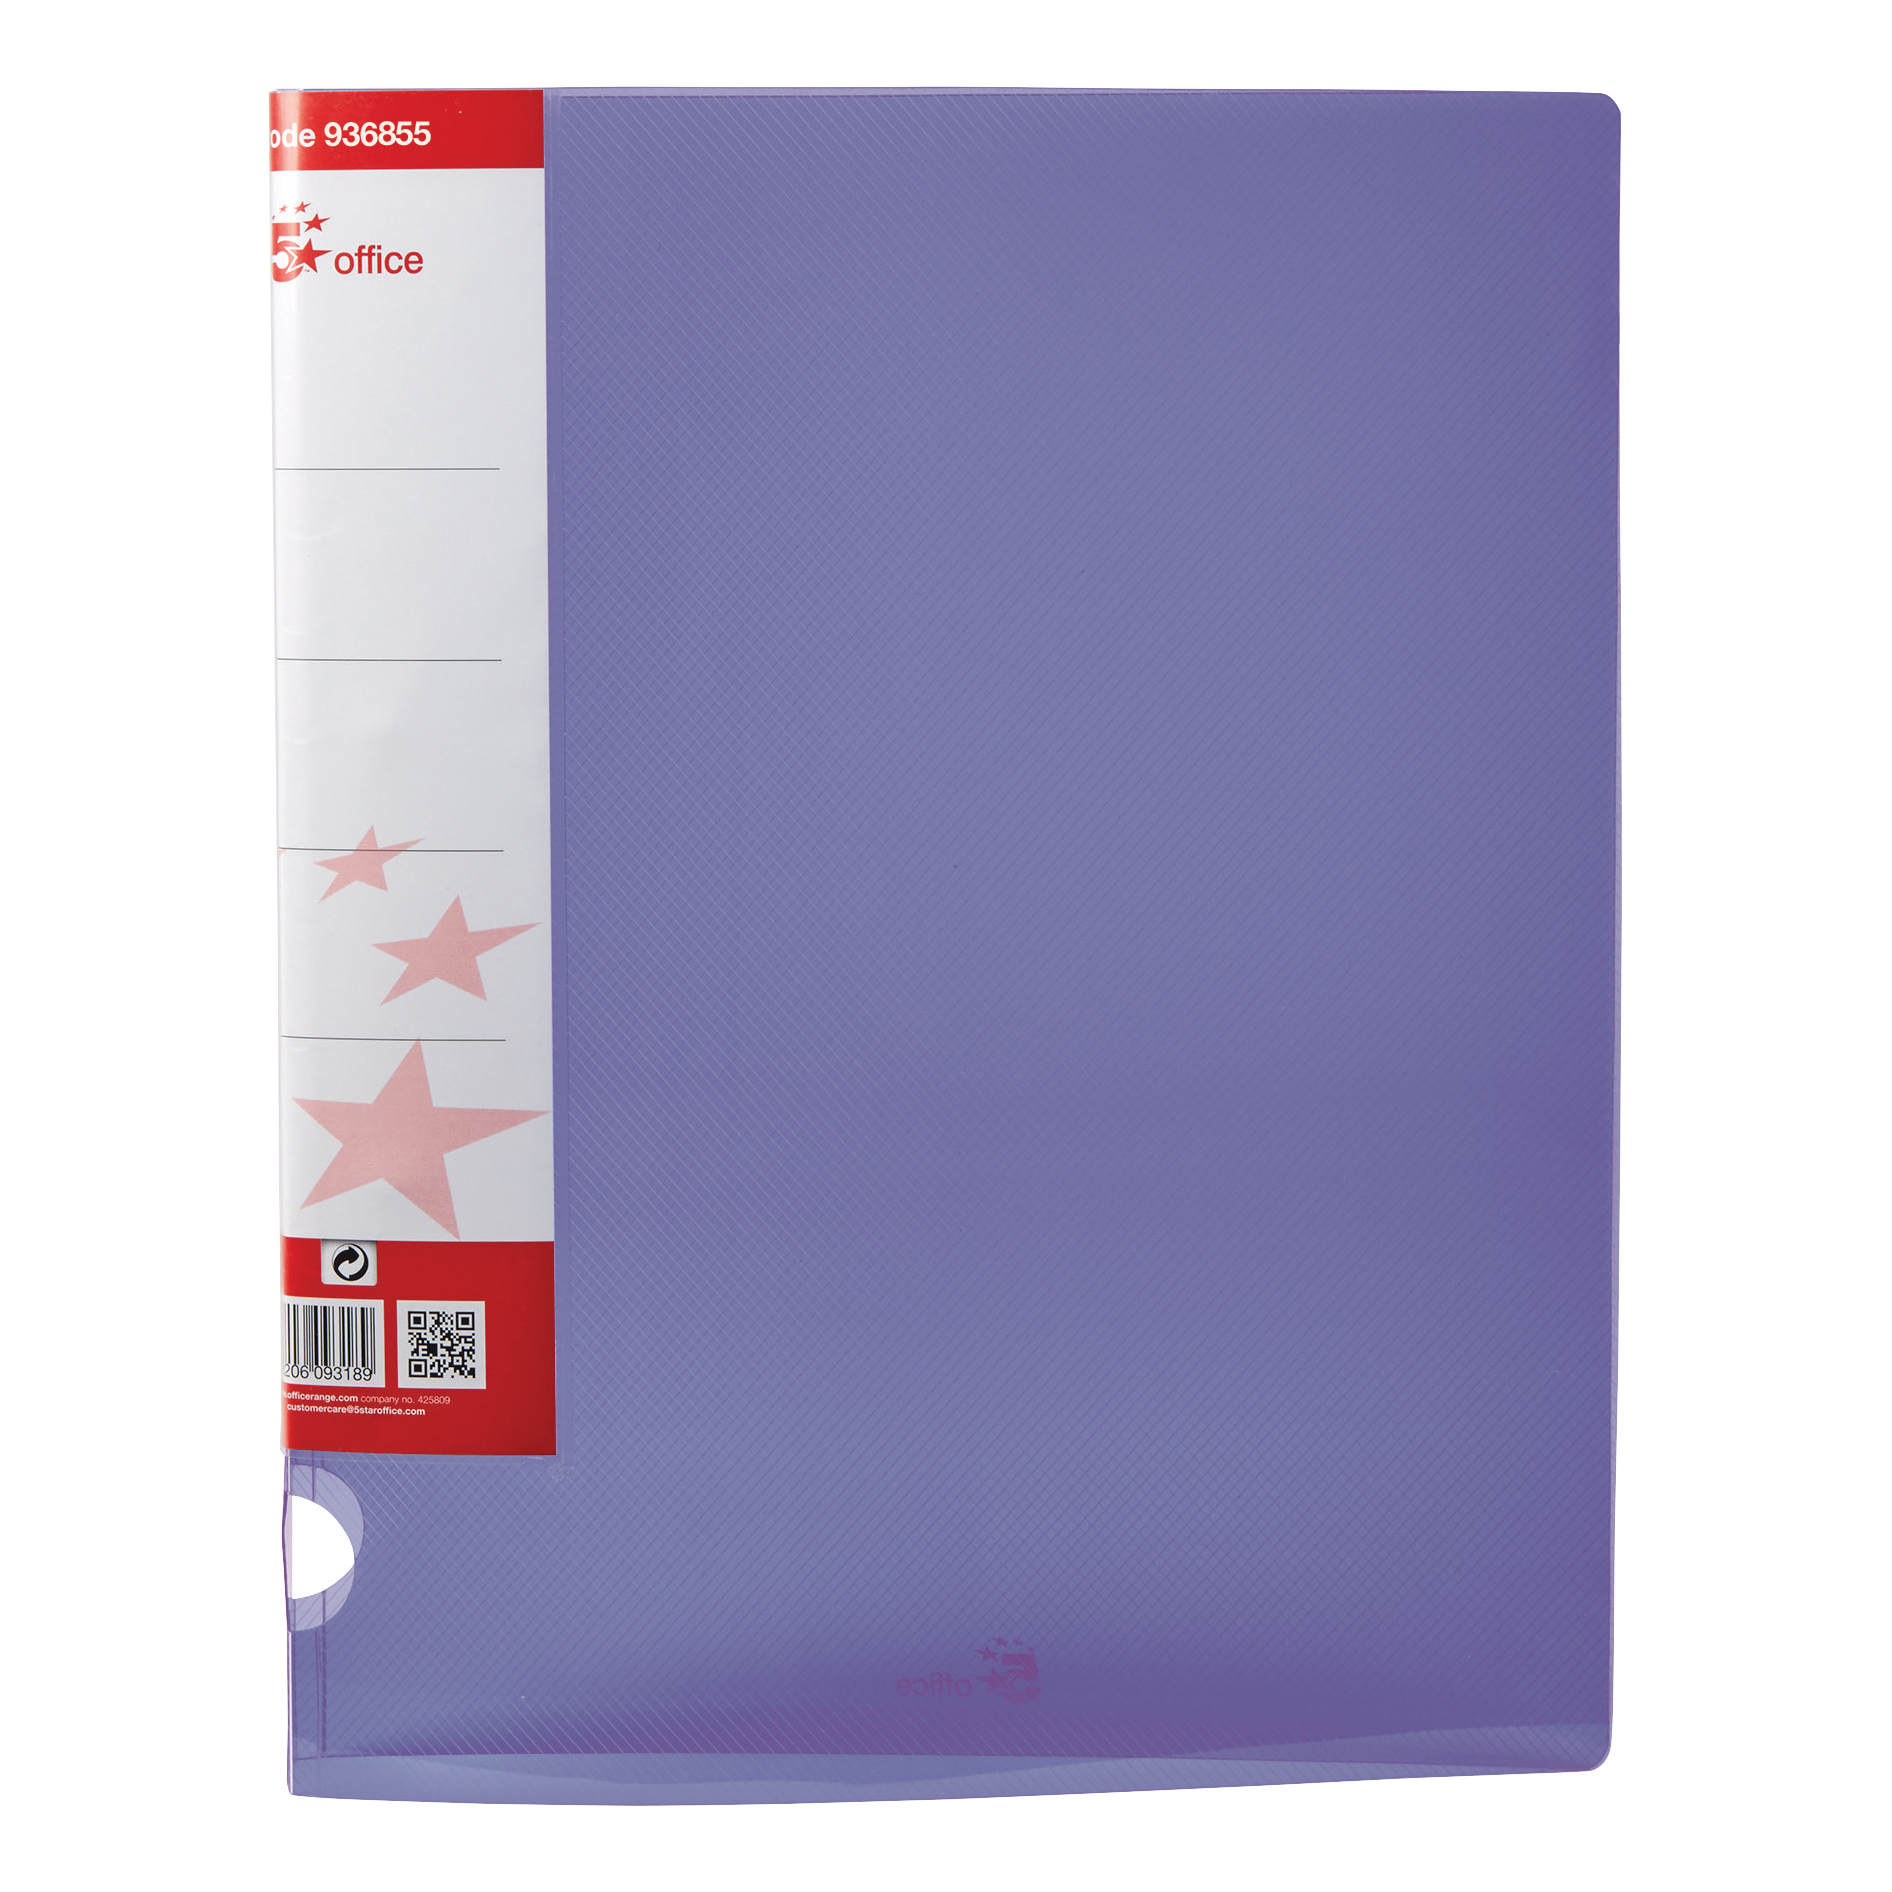 Ring Binders 5 Star Office Ring Binder 2 O-Ring Translucent Polypropylene A4 Purple Pack 10